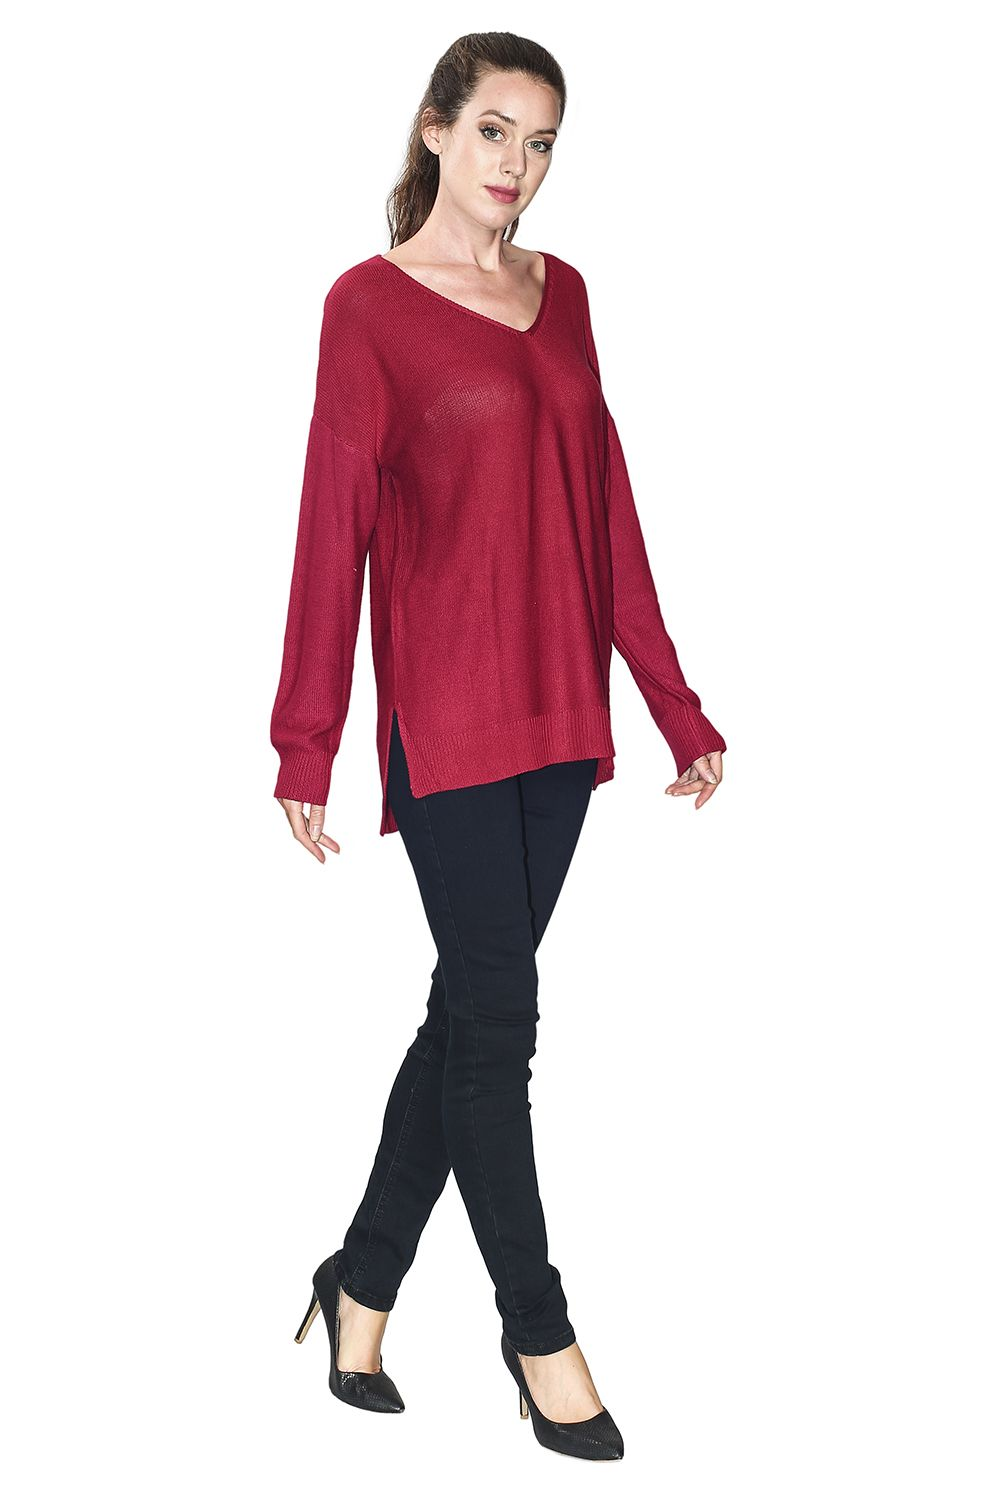 Assuili Longline V-neck Sweater with Side Splits in Maroon